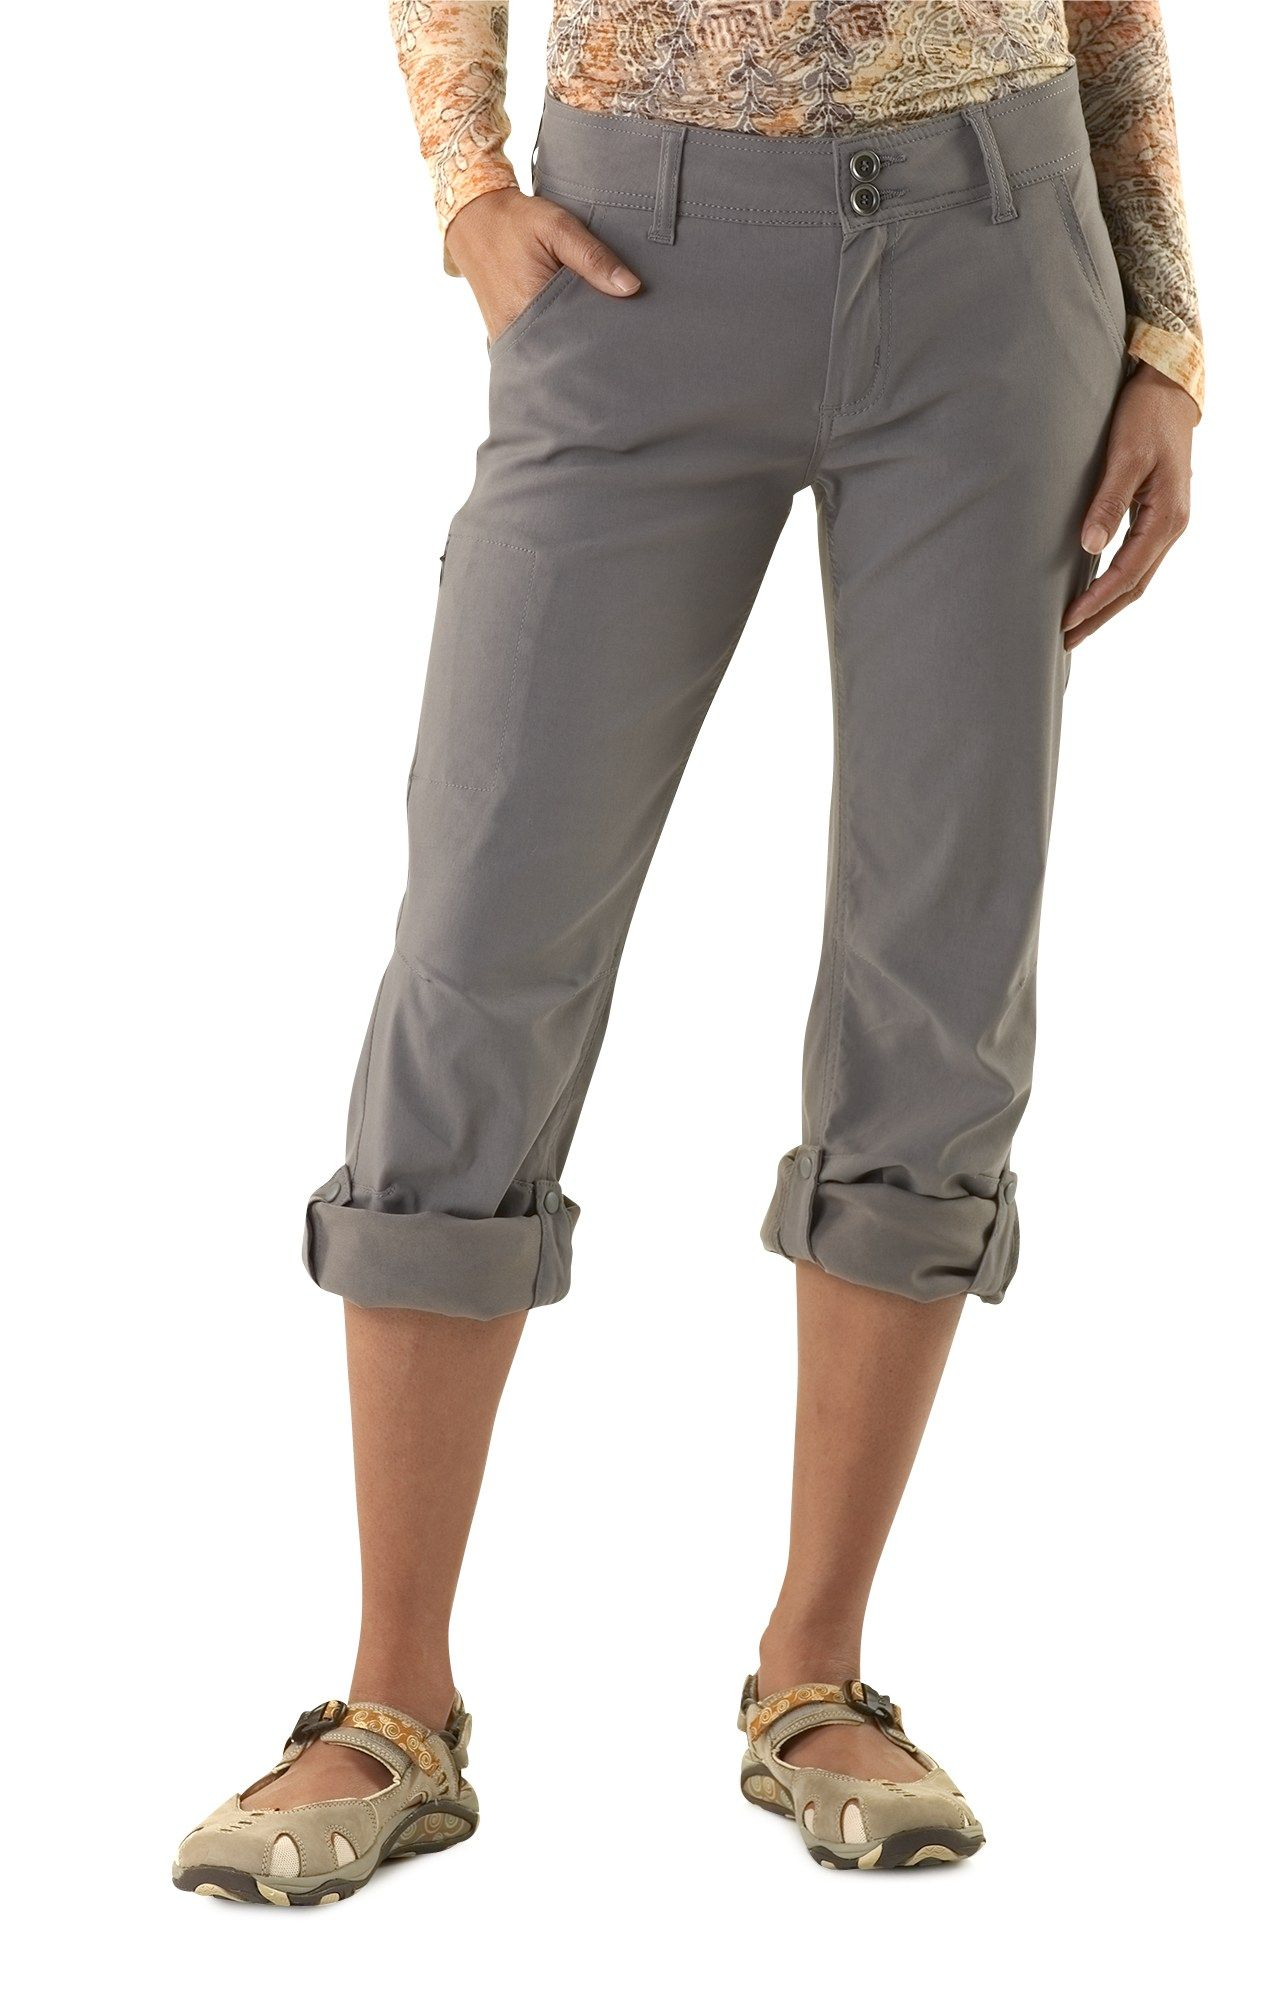 686e1105e8f6f Hiking pants similar to this that roll up into capris - quick drying -  prAna Halle Pants - Women's - Free Shipping at REI.com